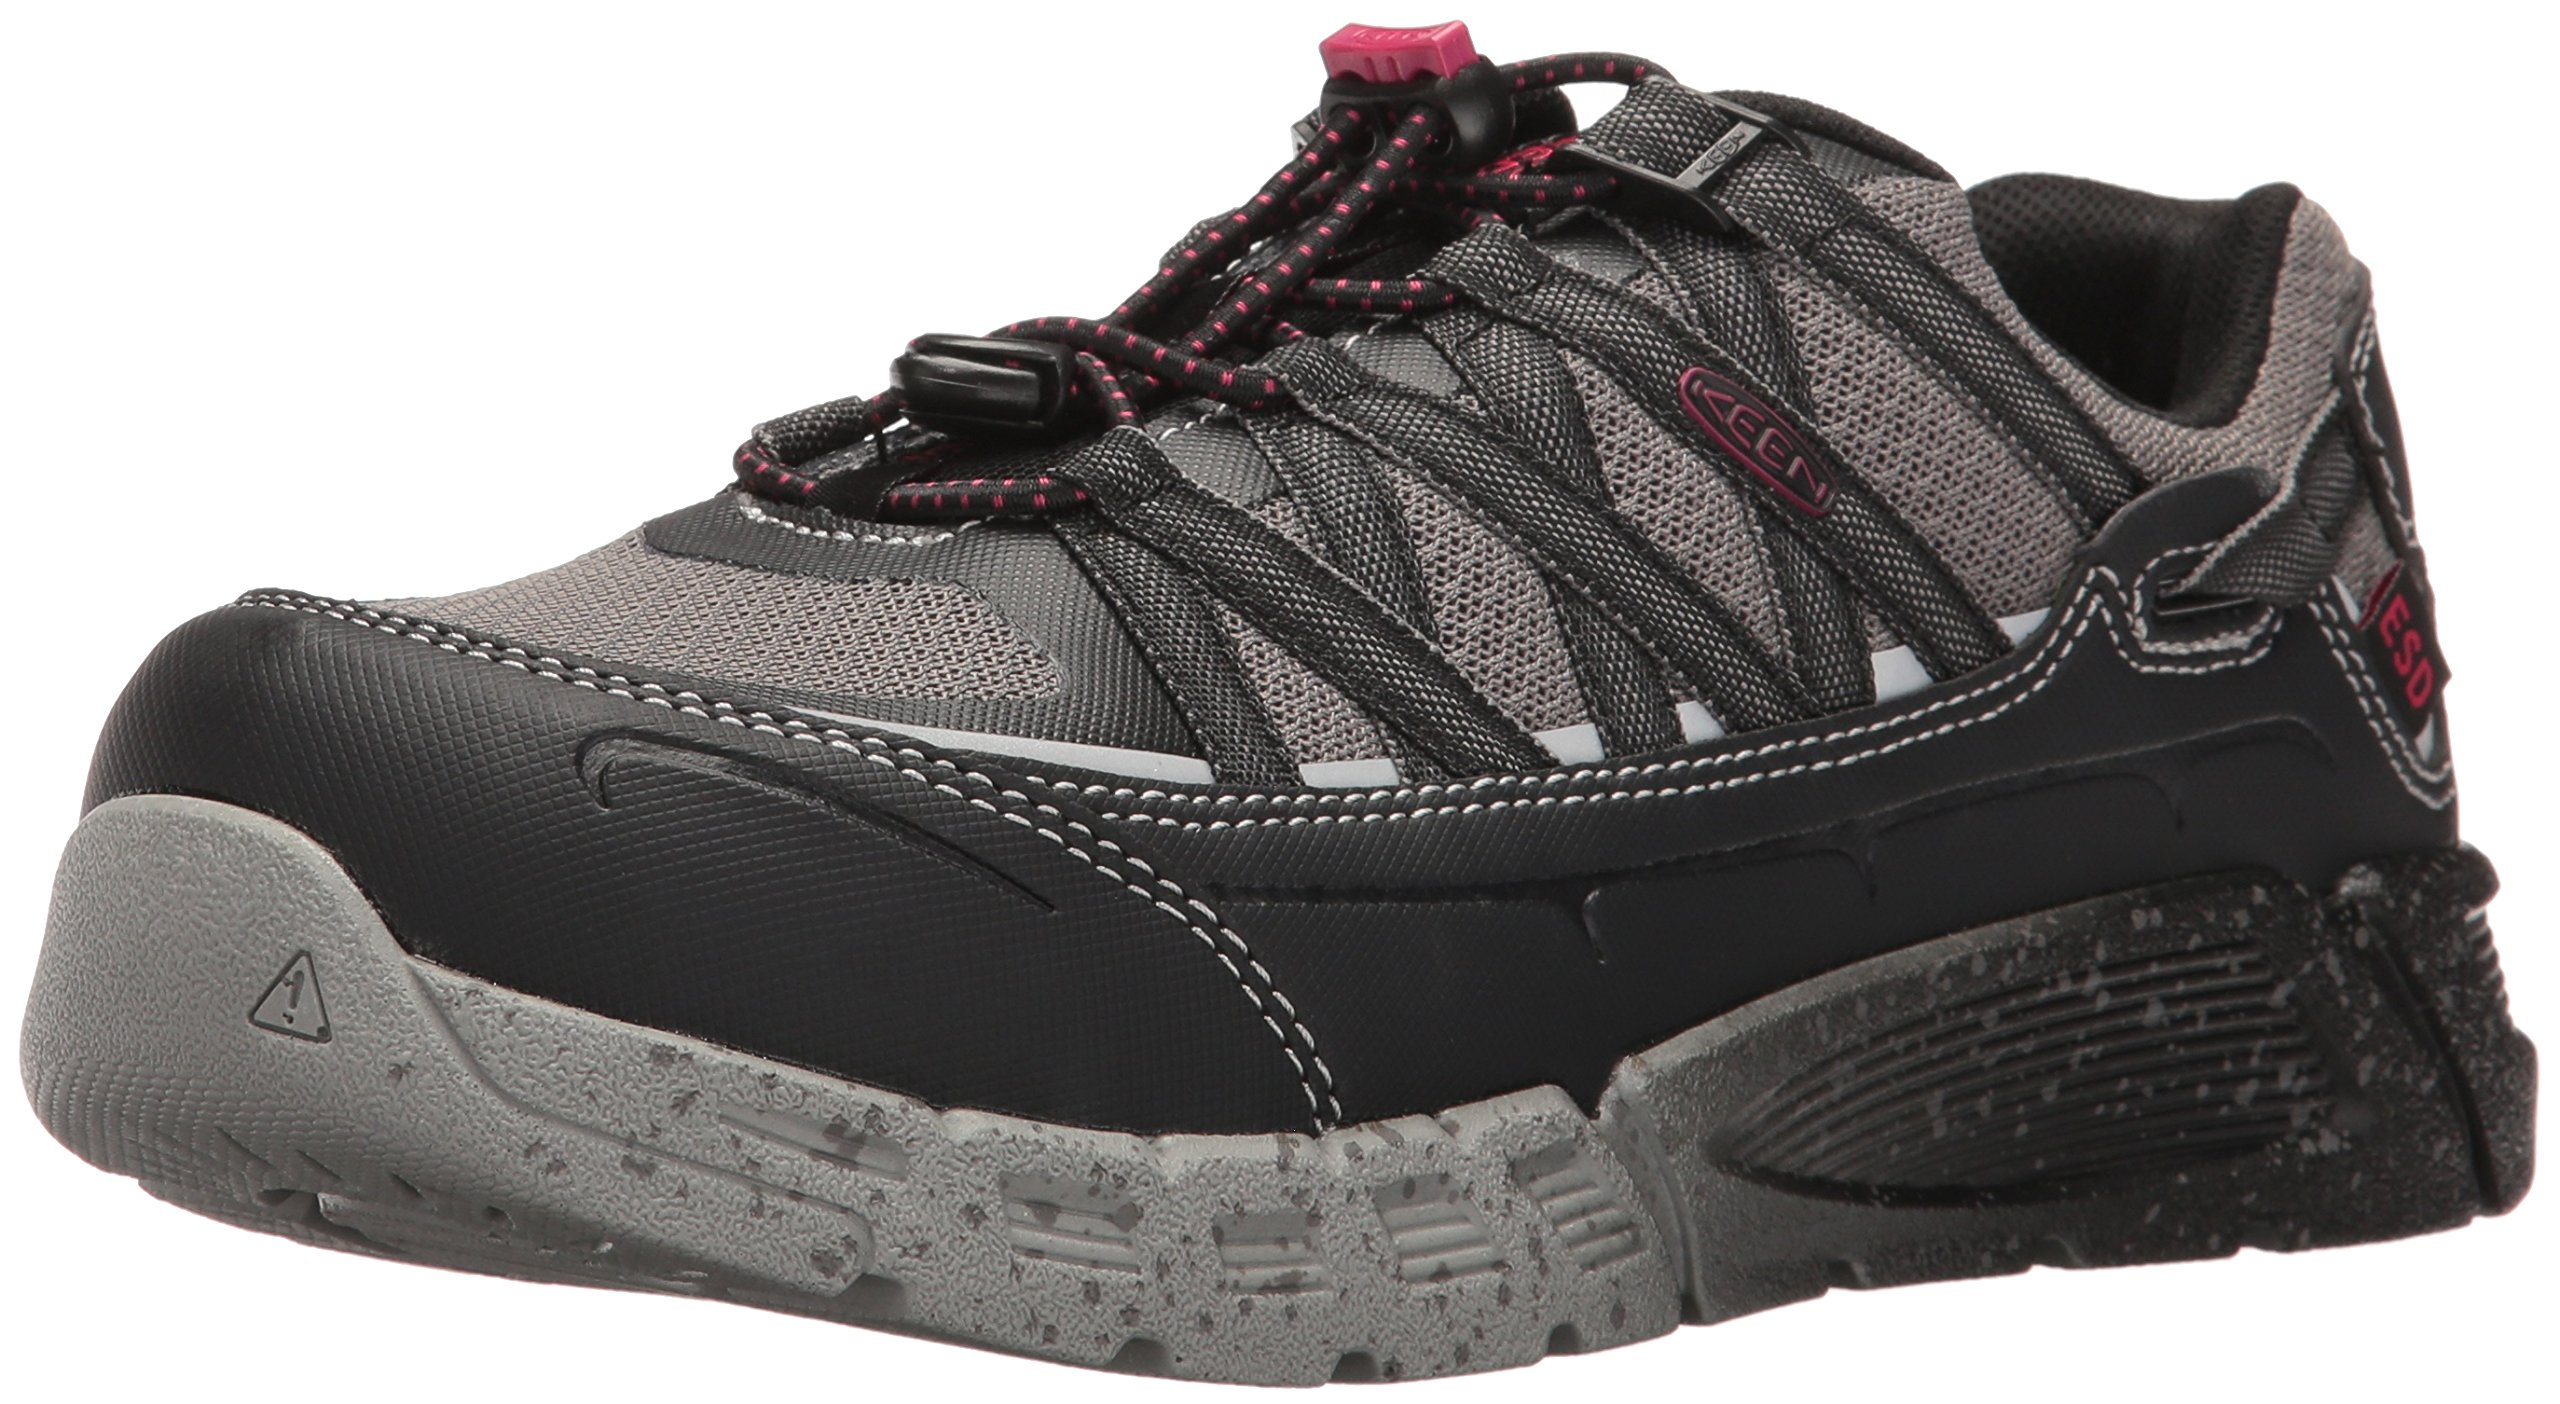 KEEN Utility Women's Asheville at ESD Industrial and Construction Shoe, Black/Gargoyle, 8 M US